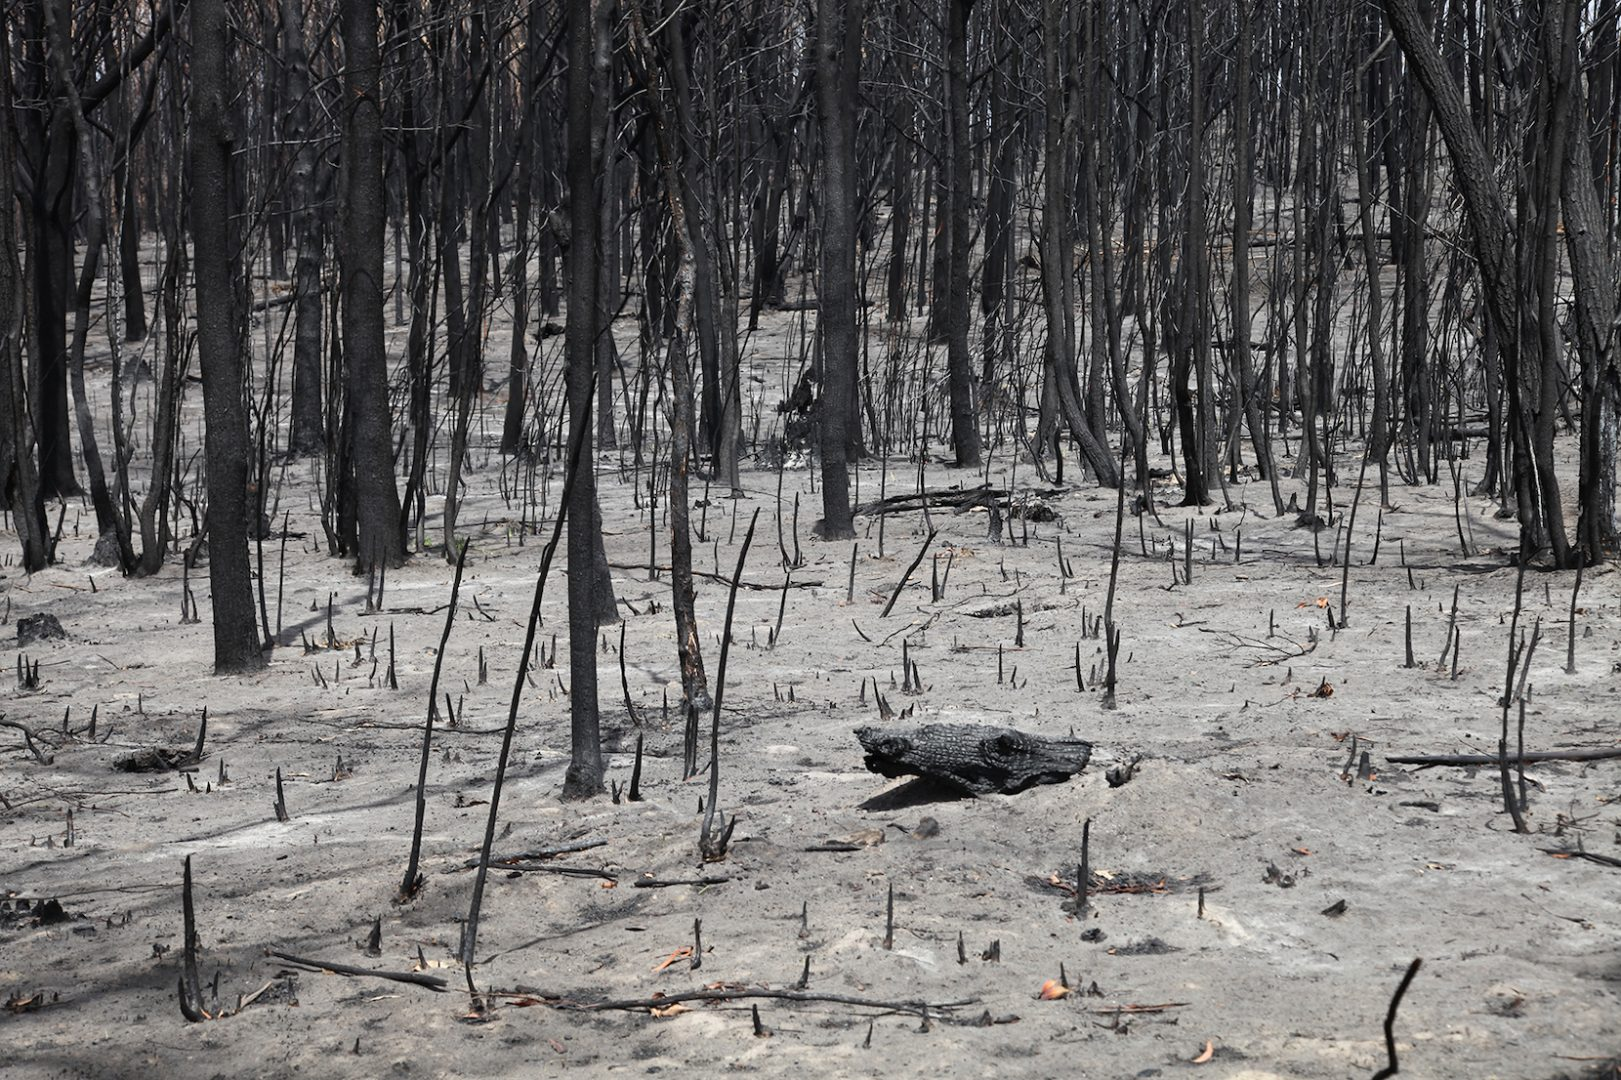 Areas with complete burning, including forest canopy, photo credit: Hayden Fowler